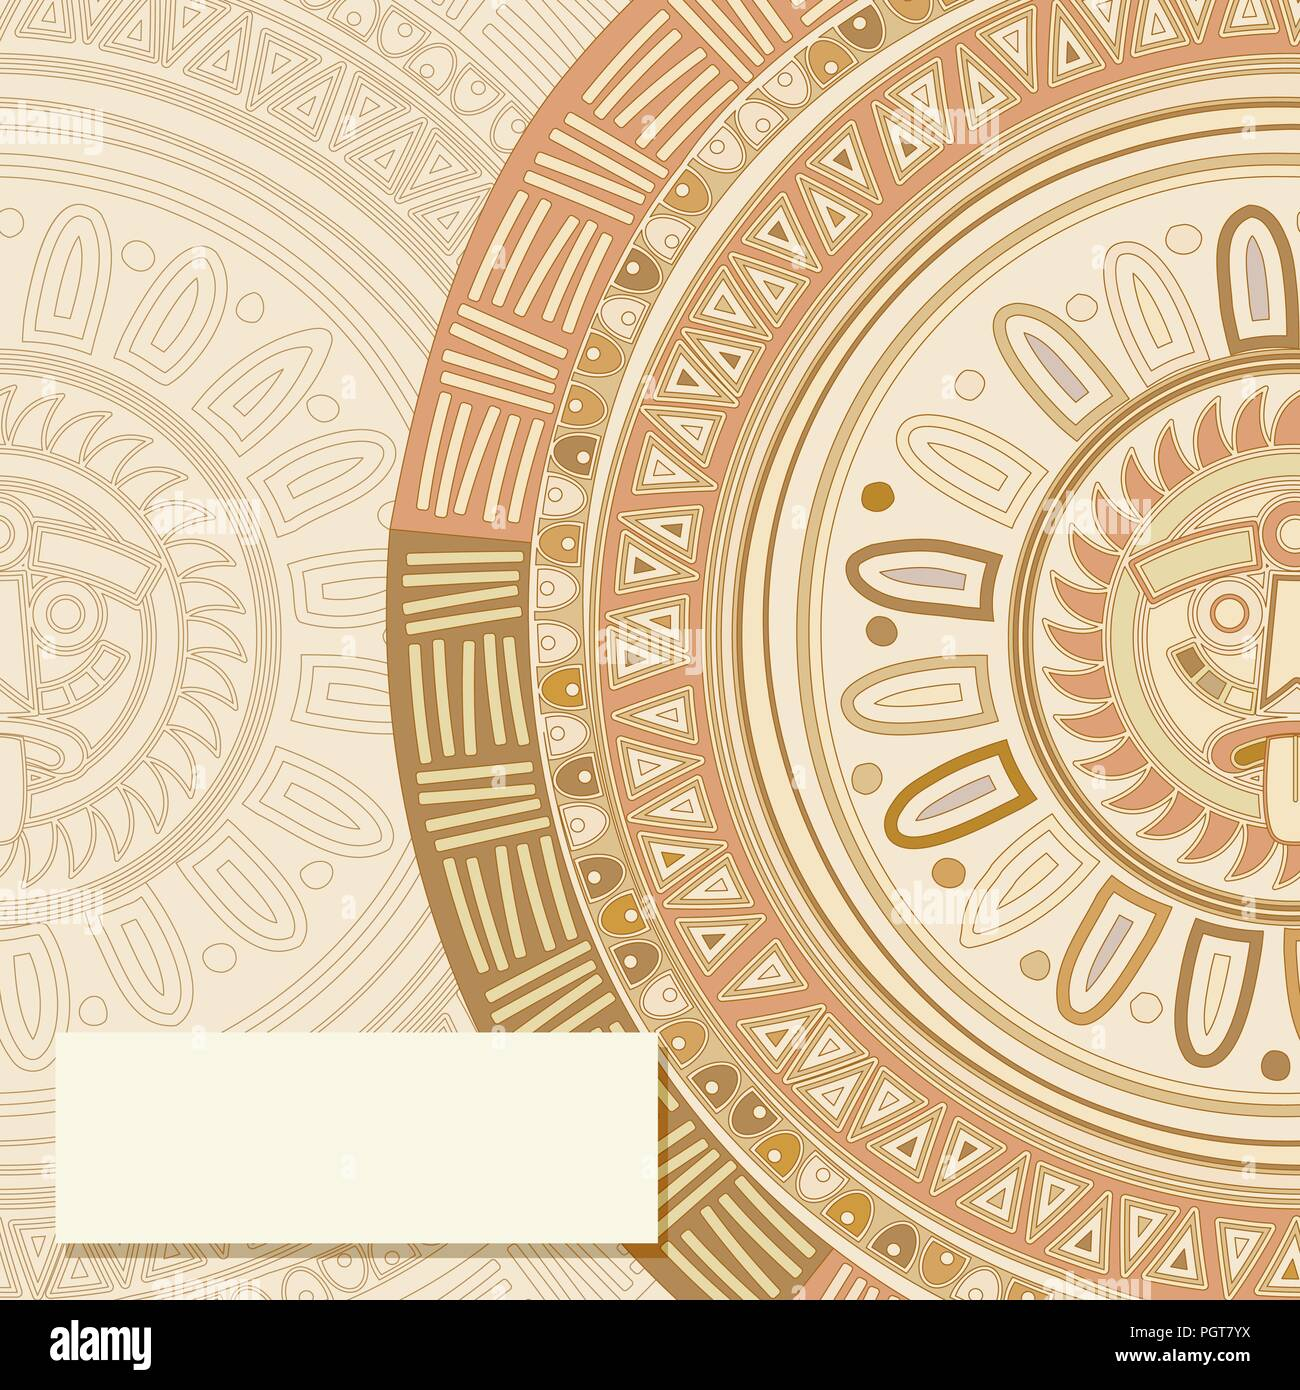 Invitation text card vector template with mayan sun symbol stock invitation text card vector template with mayan sun symbol stopboris Image collections